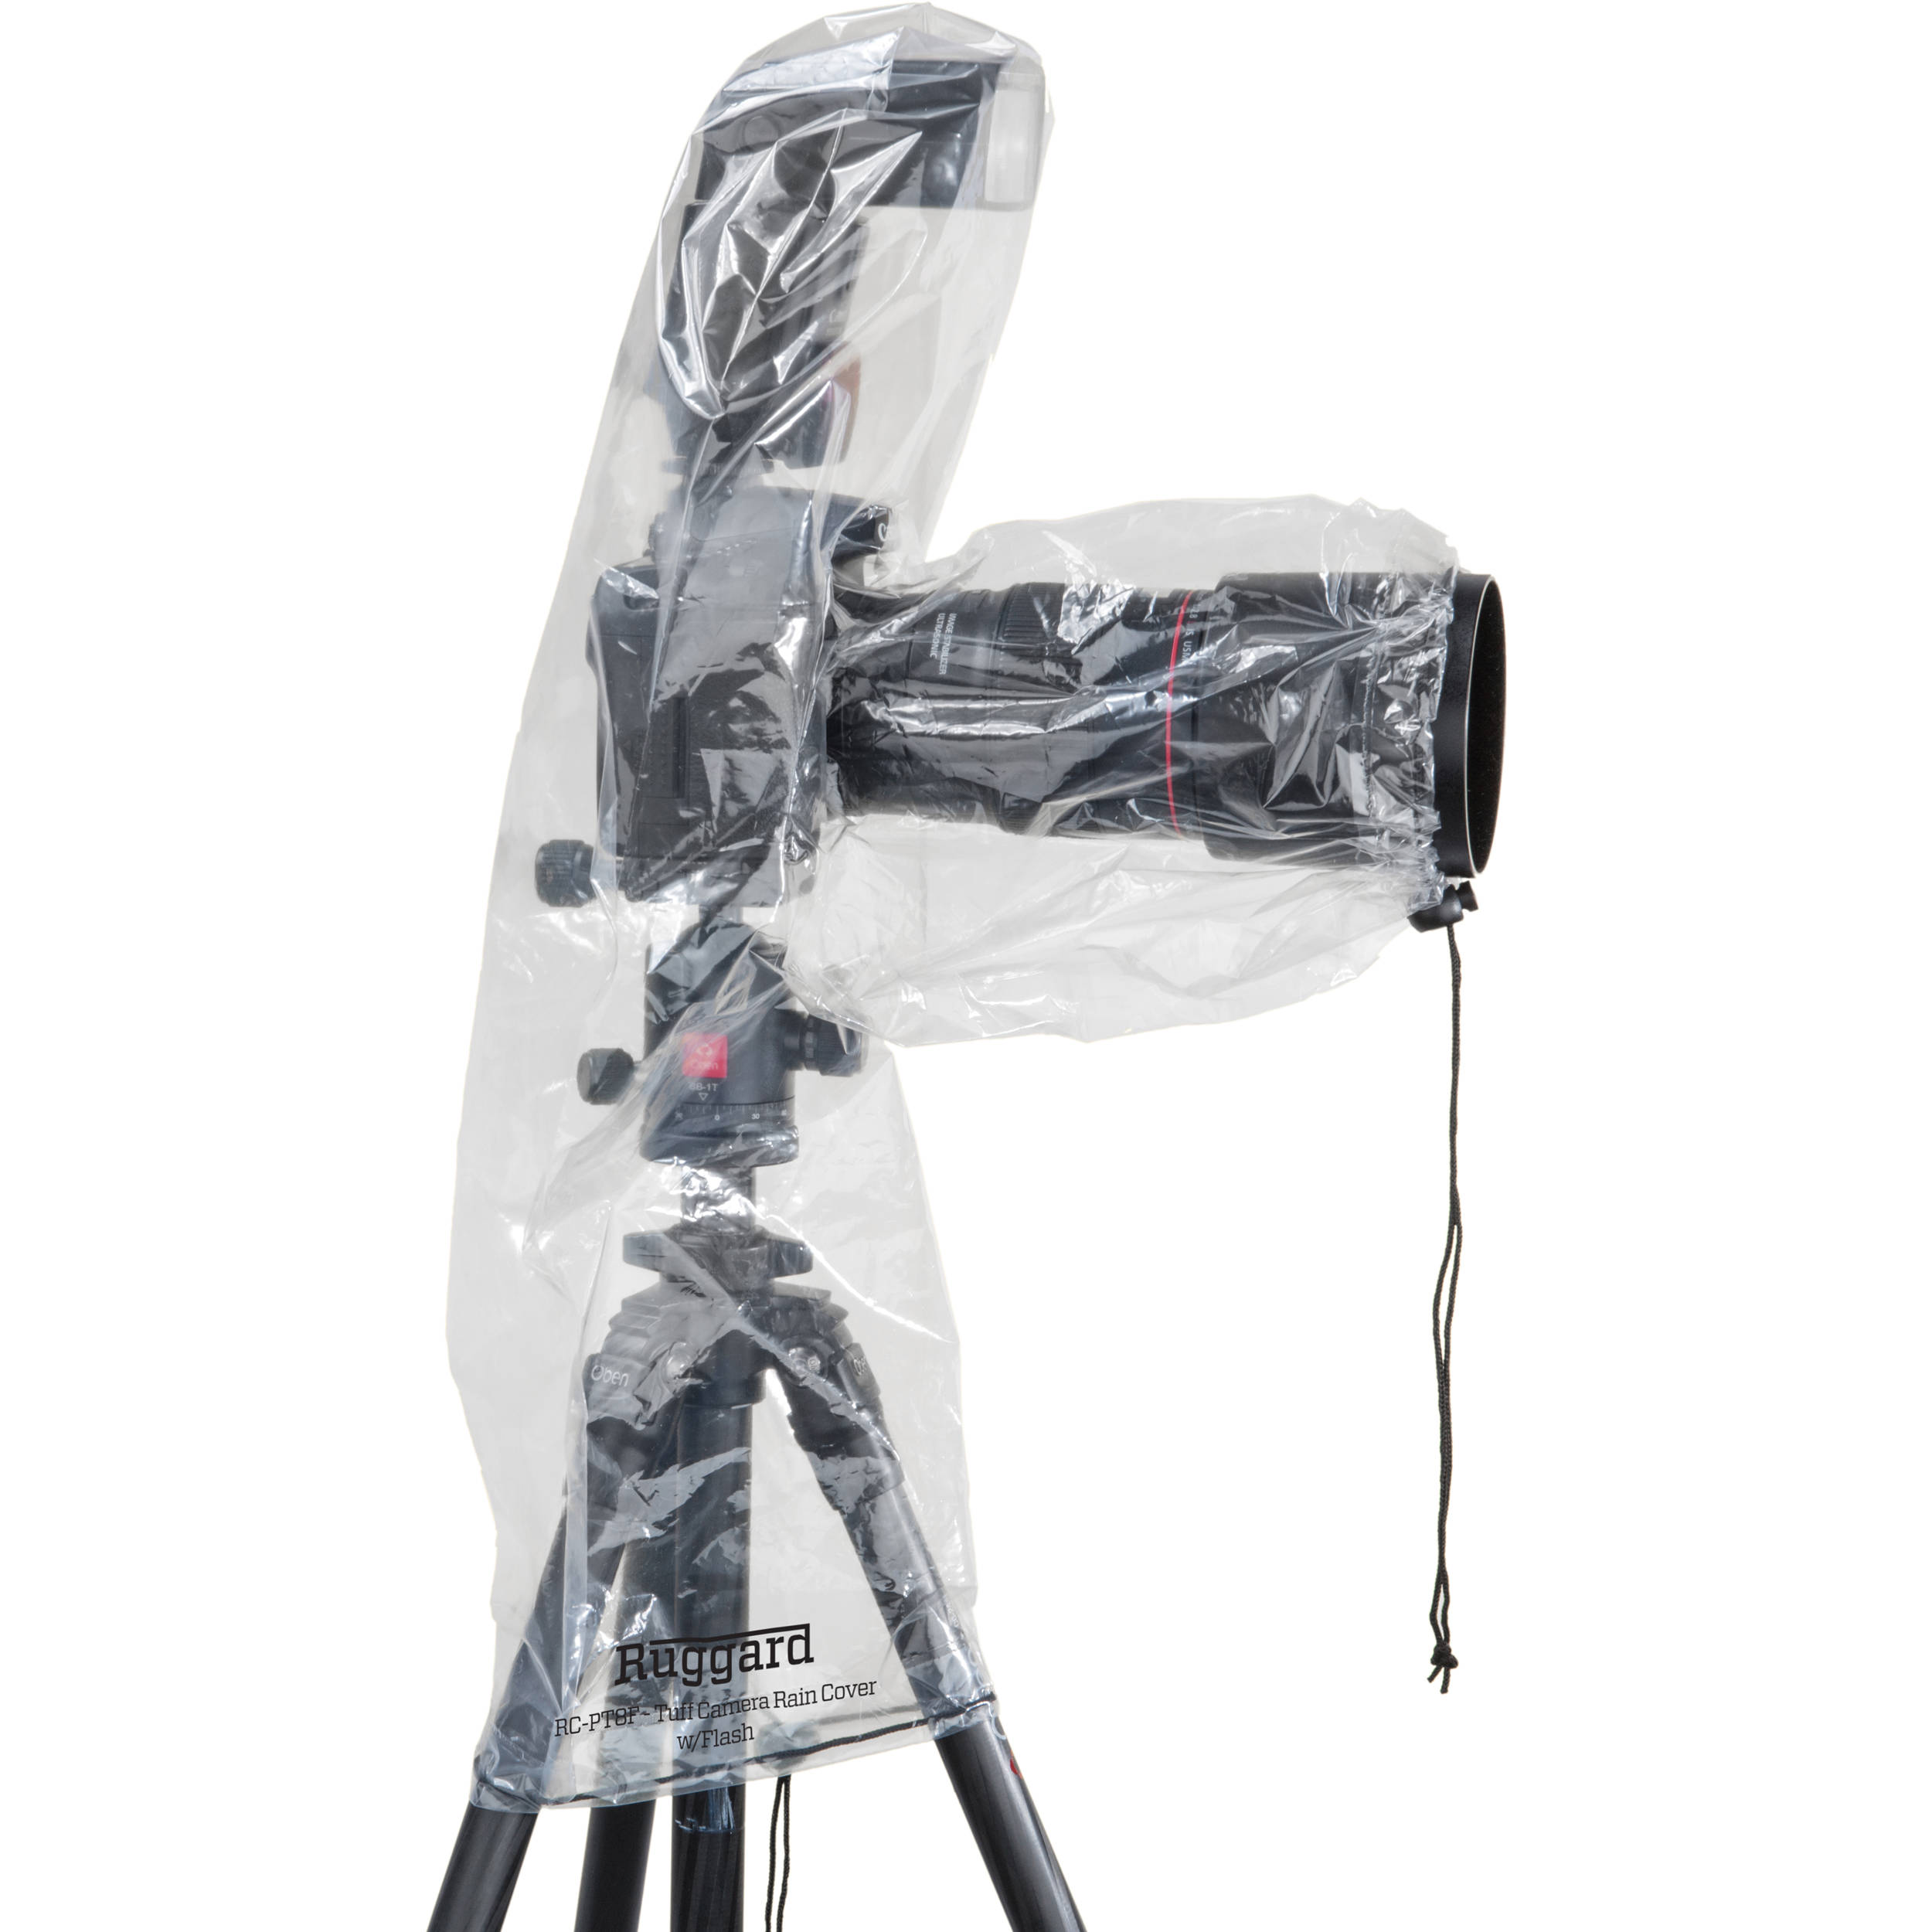 Ruggard RC-P8F Rain Cover for DSLR with Lens up to RC-P8F B&H